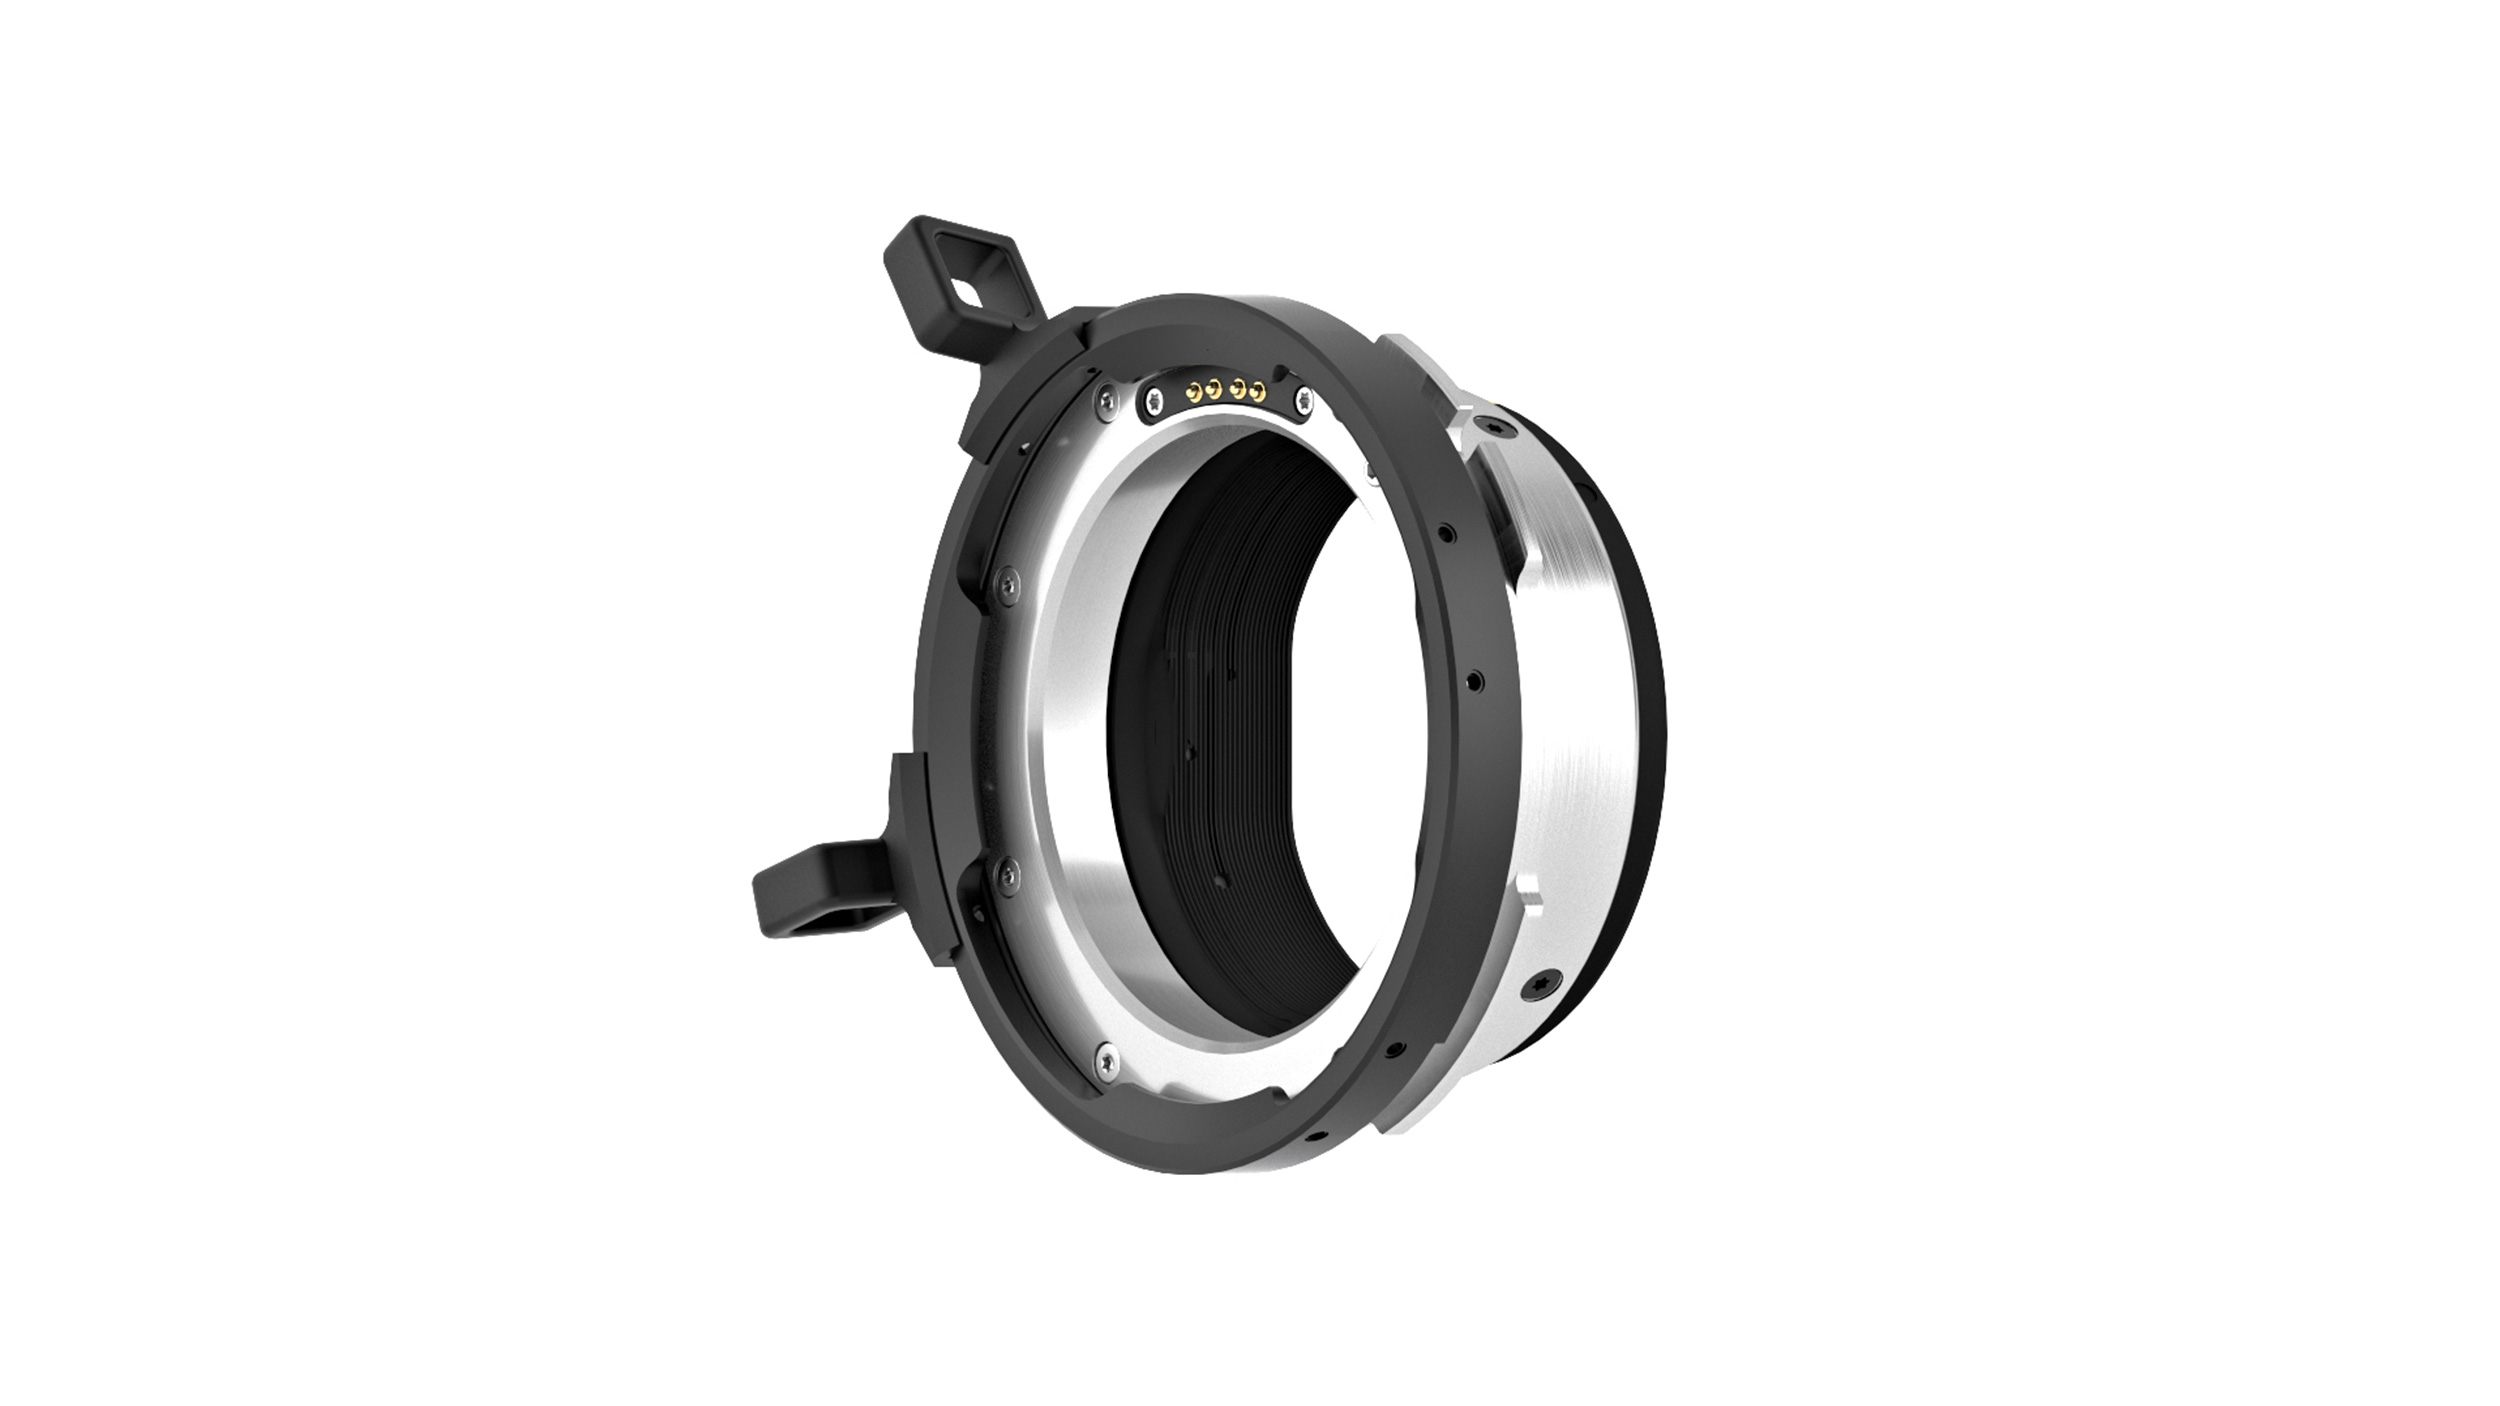 k2.0016936  arri pl-to-lpl adapter